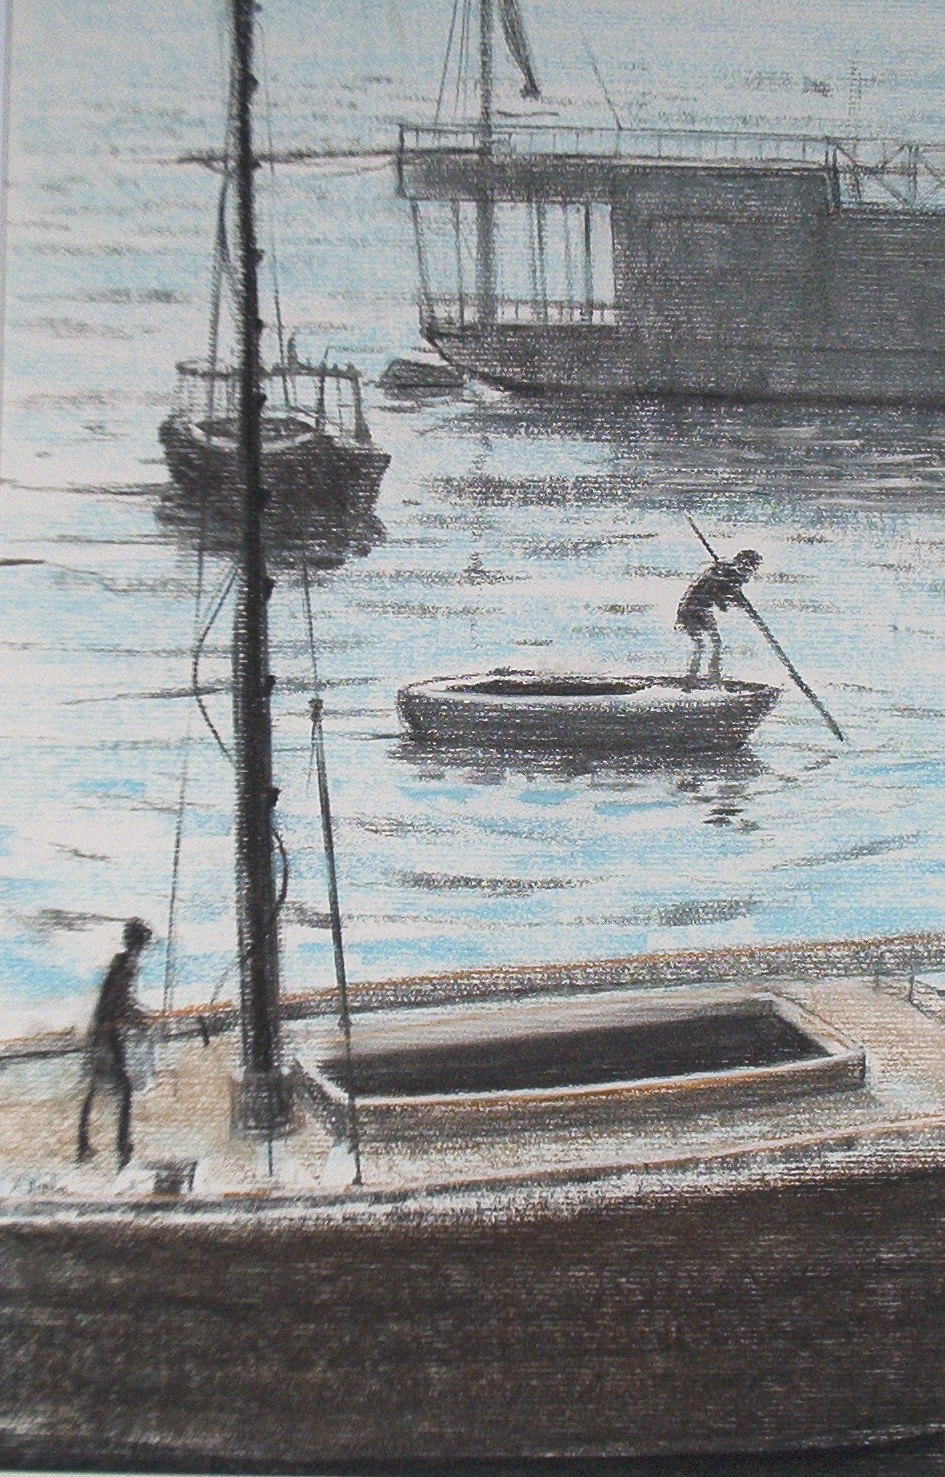 Pastel drawing of Nile houseboat